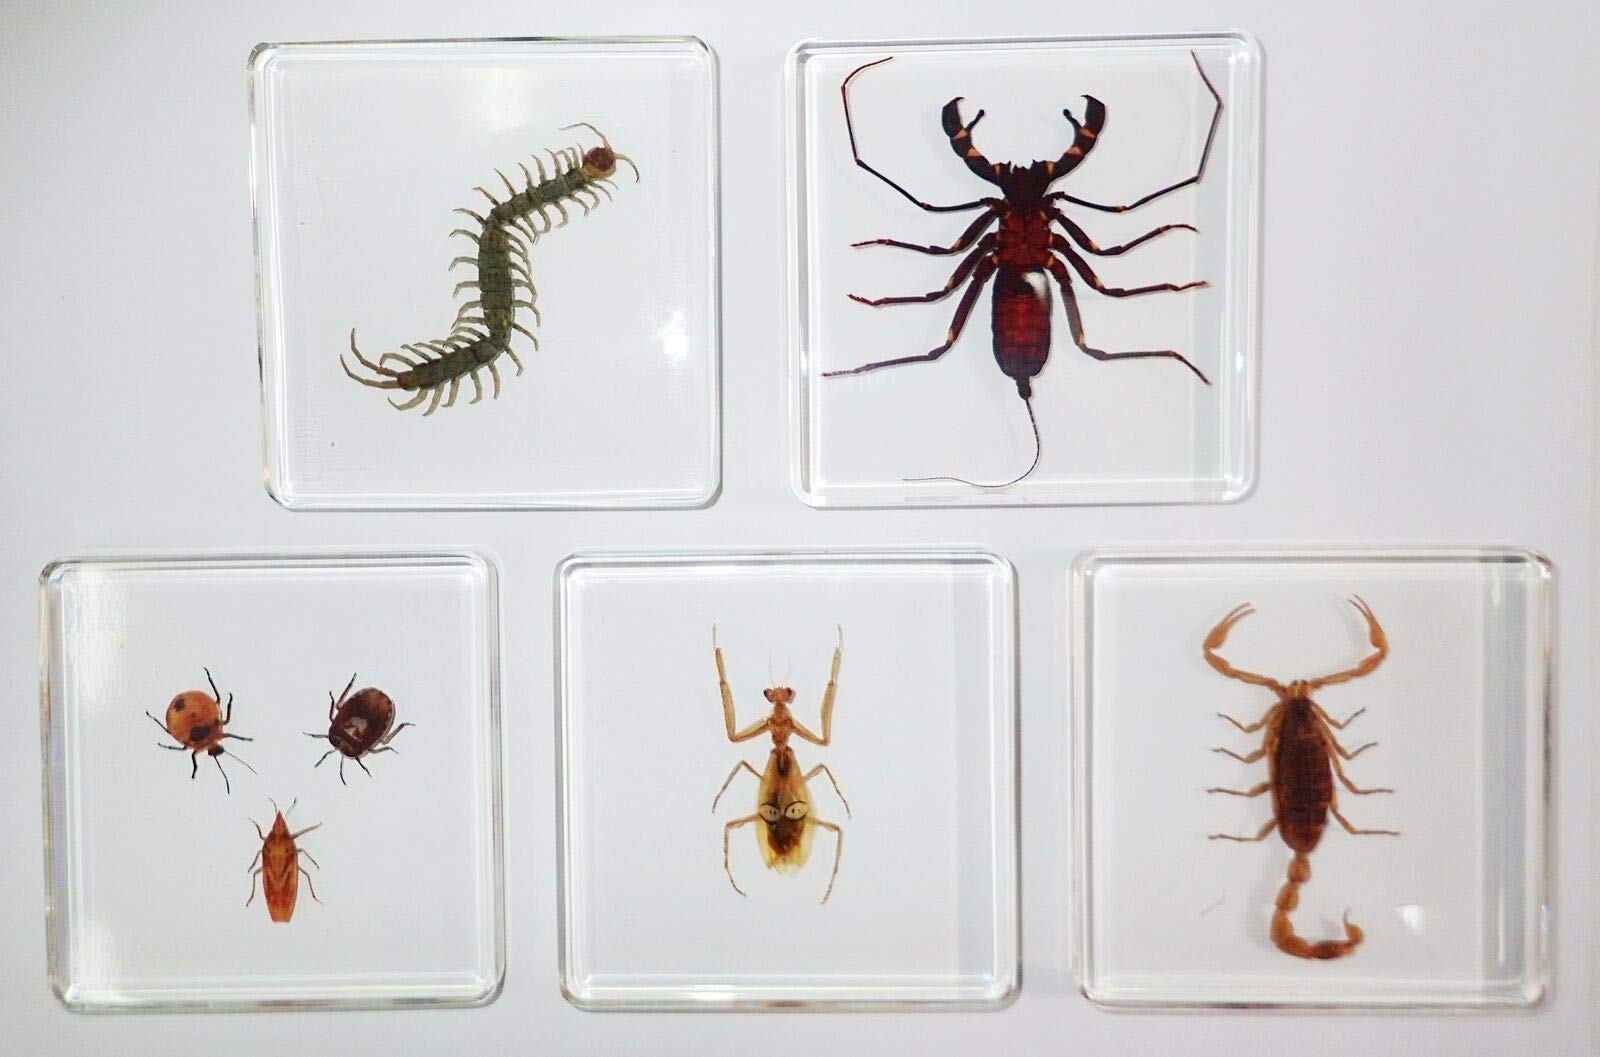 Siam Insects 7 Insect Specimen Box Set in 5 Clear Square Slide Block Education Kit